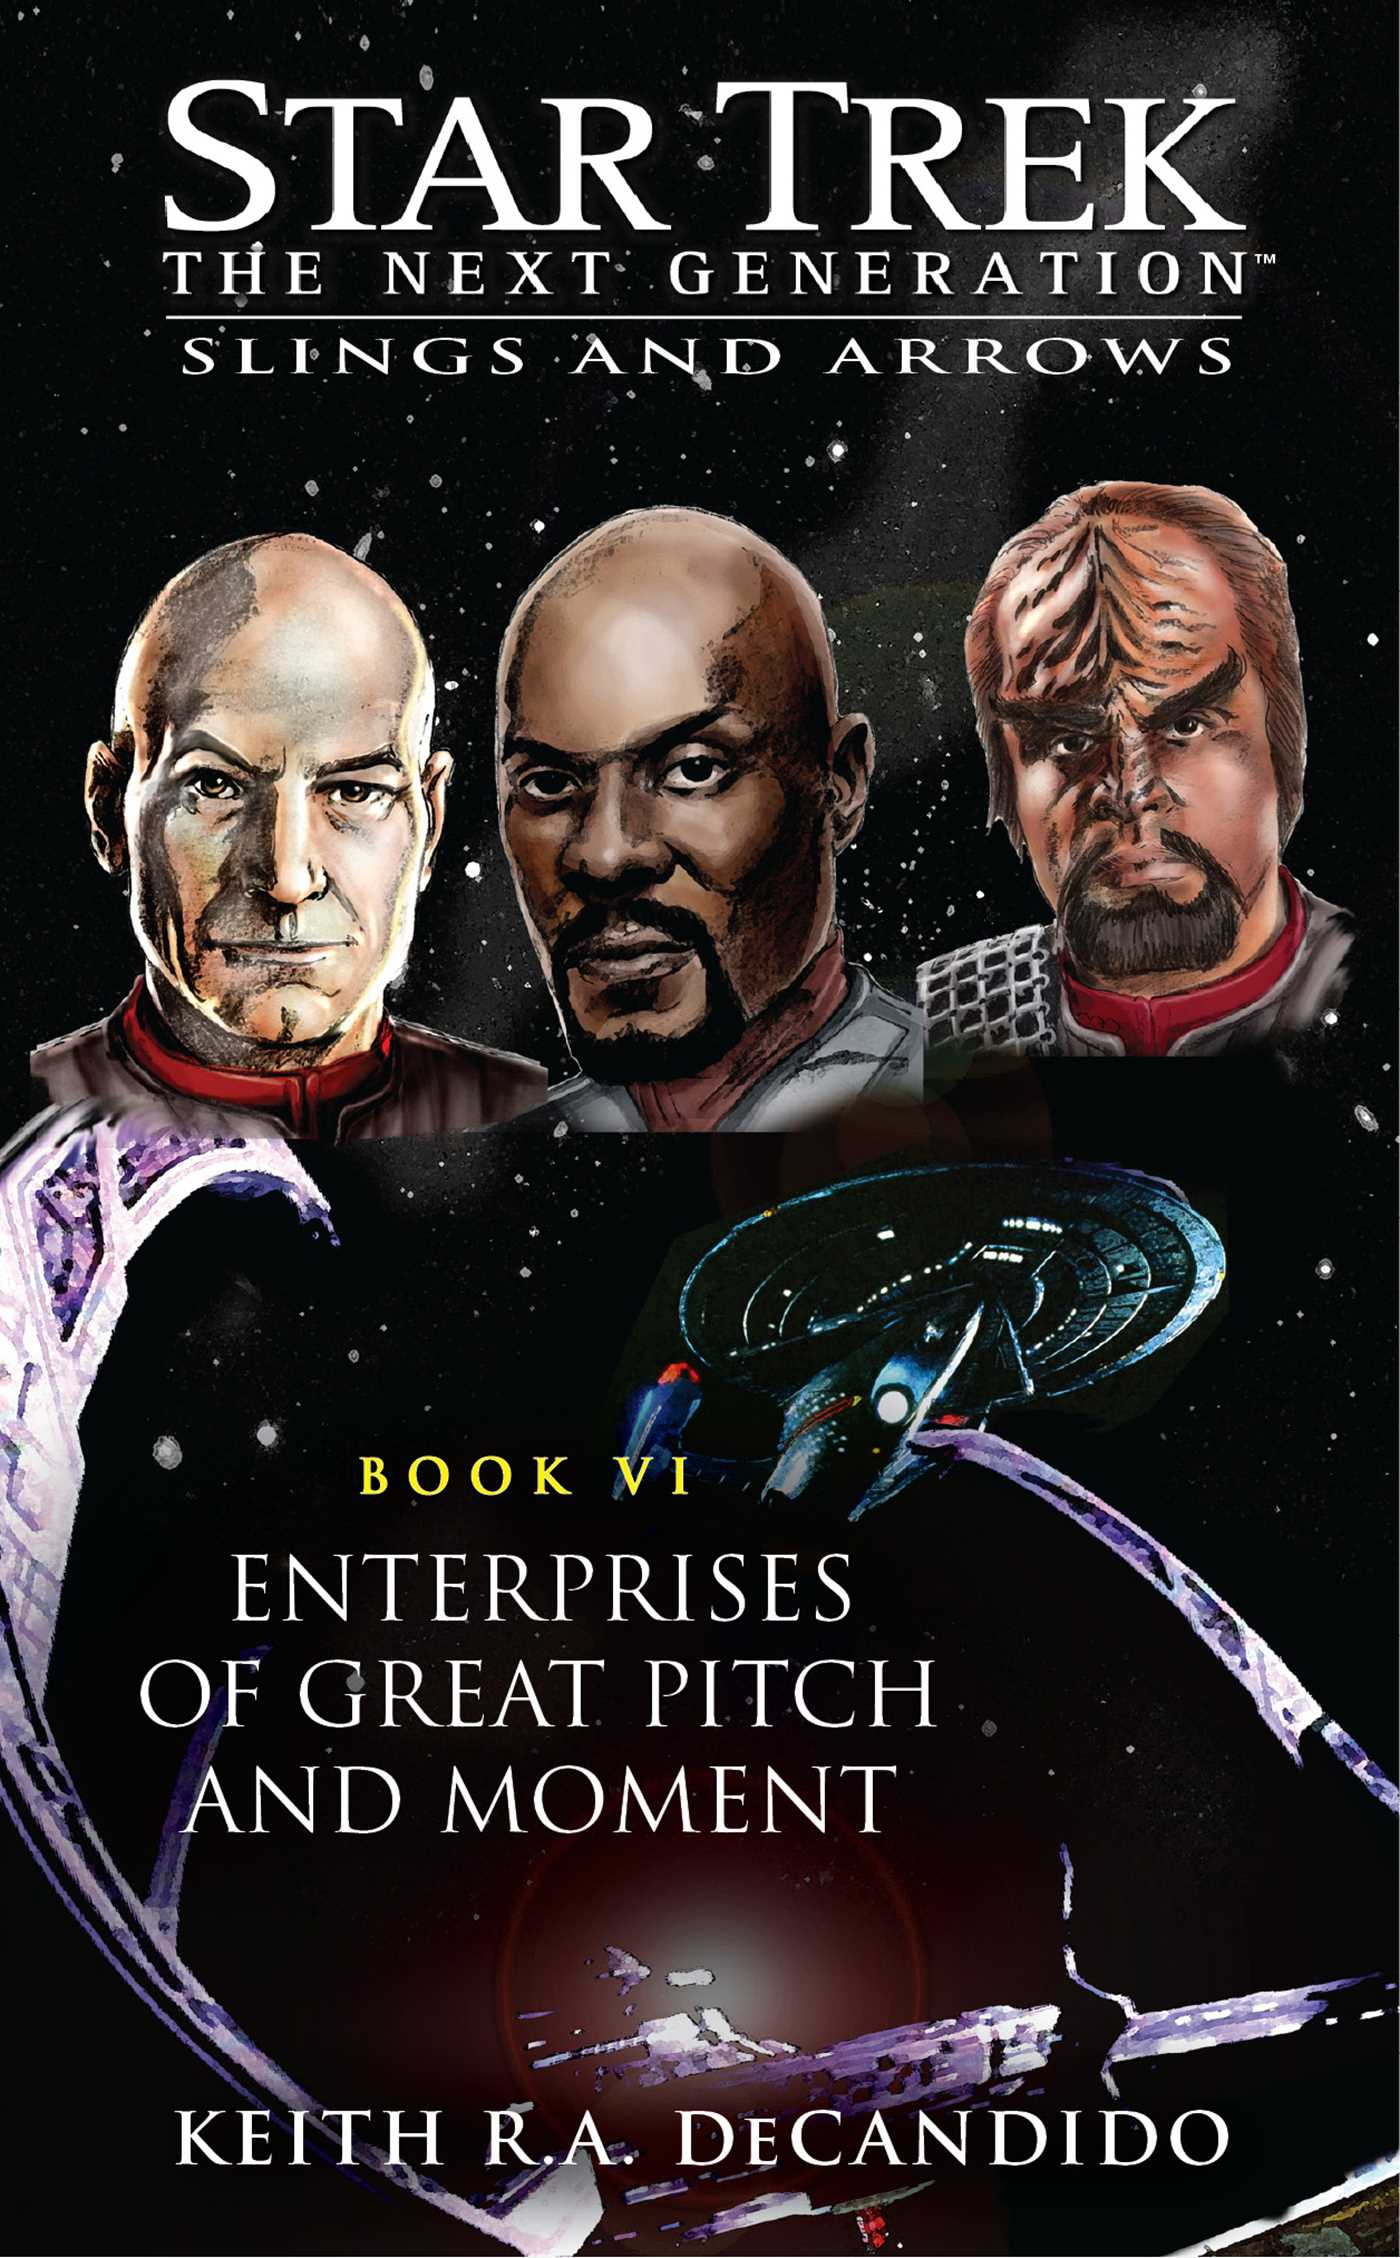 Star trek tng enterprises of great pitch and moment 9781416550273 hr